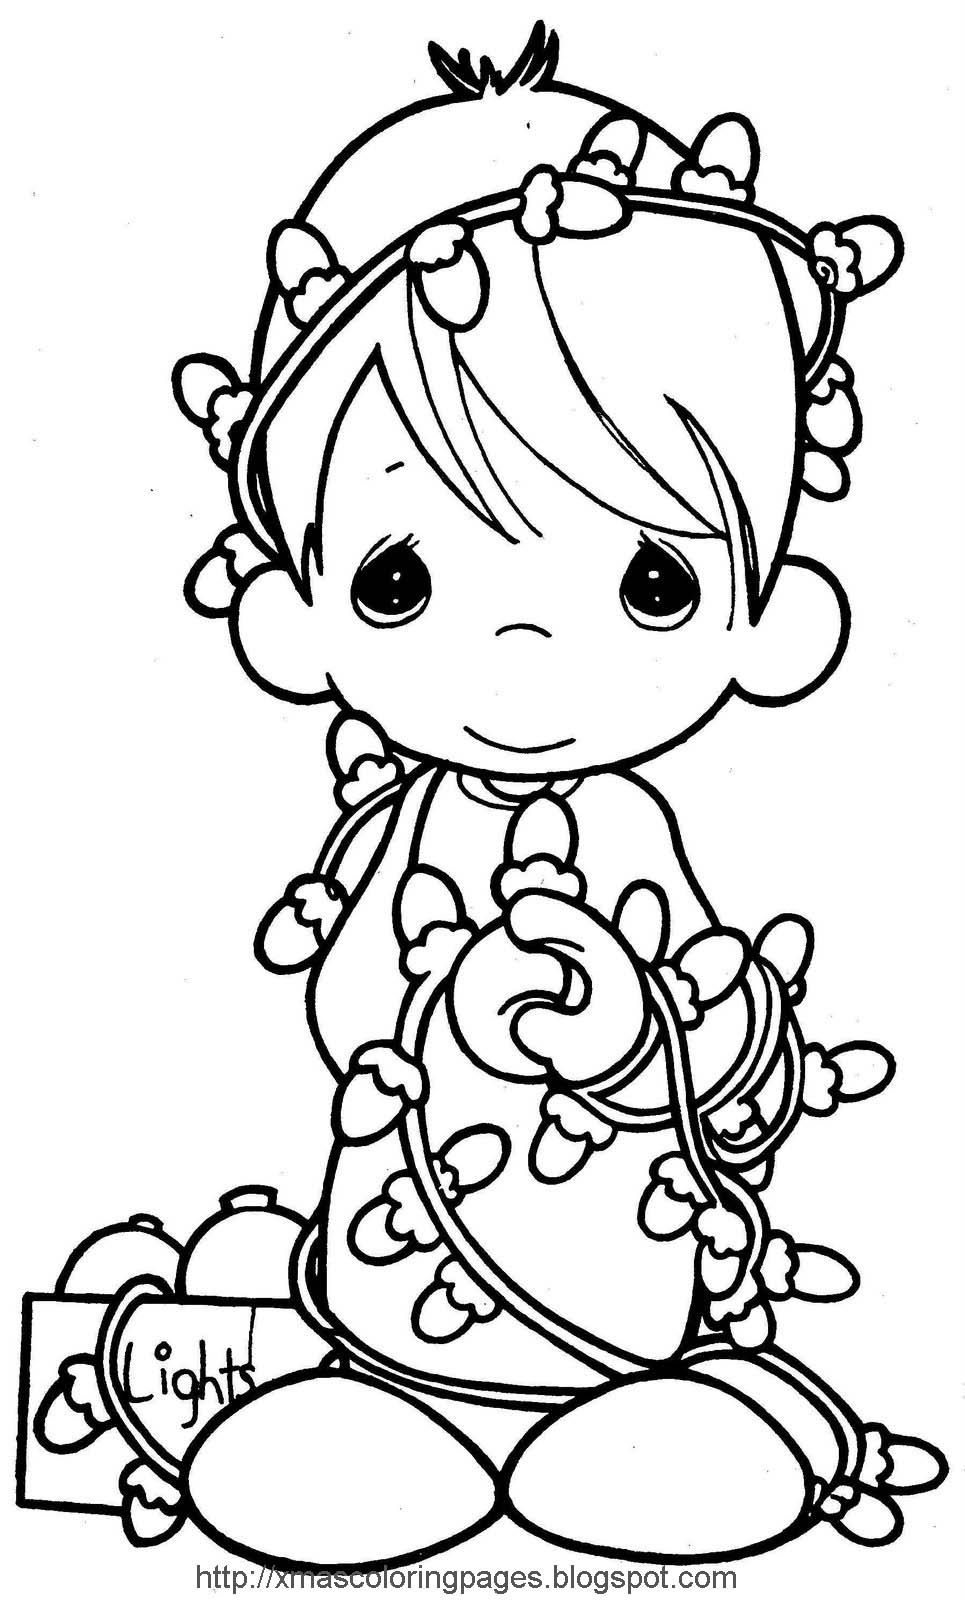 Christmas Angels Coloring Pages To Print - Coloring Home